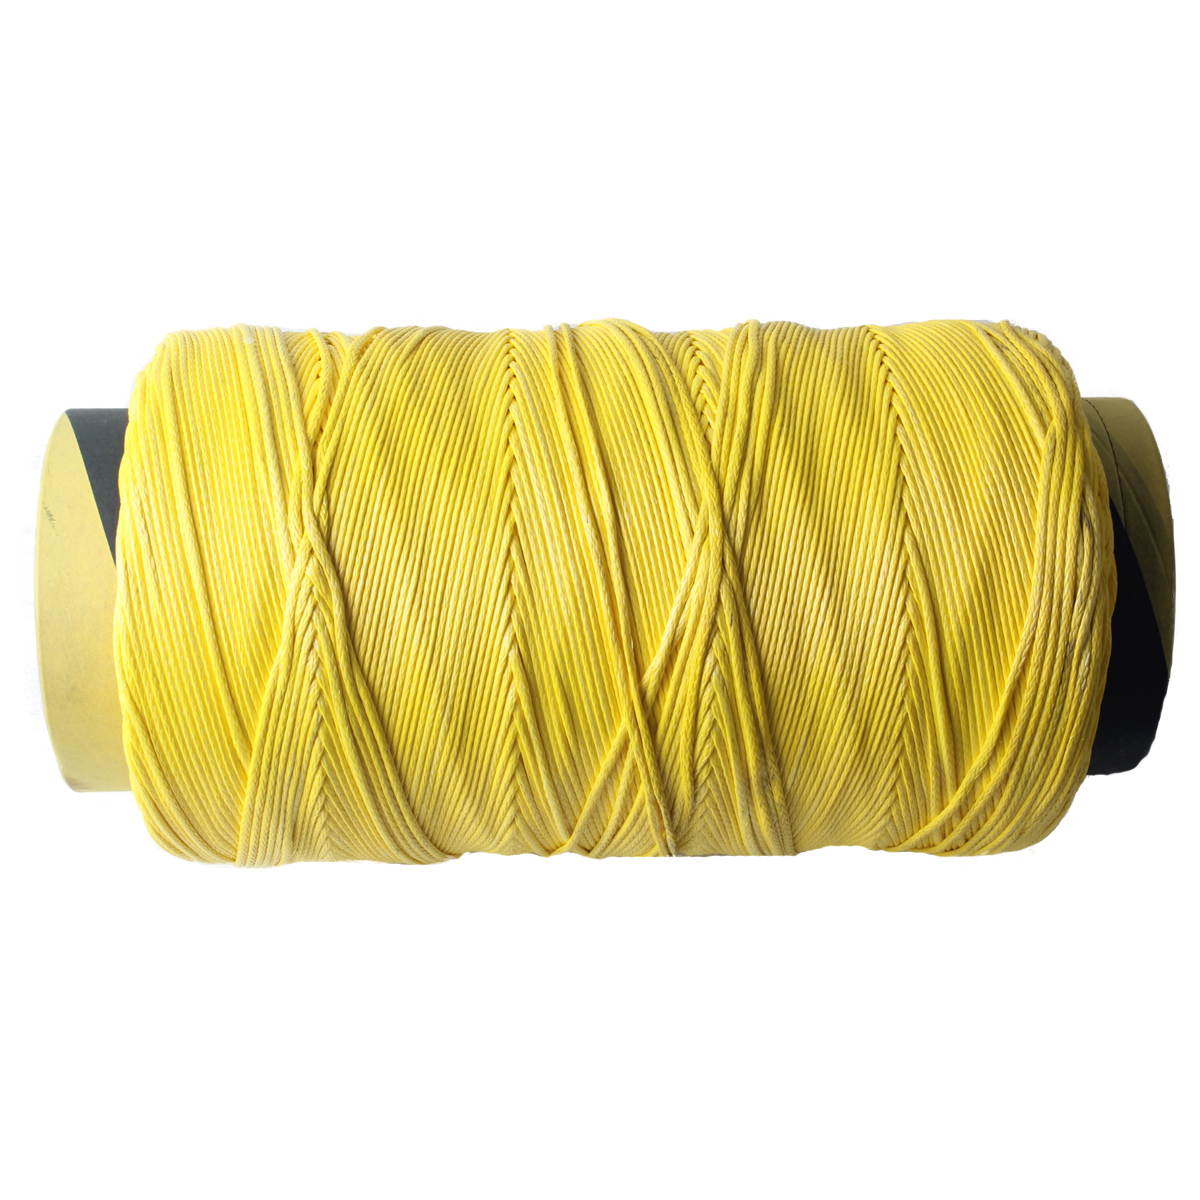 12strands braided vectran rope for paragliding winch